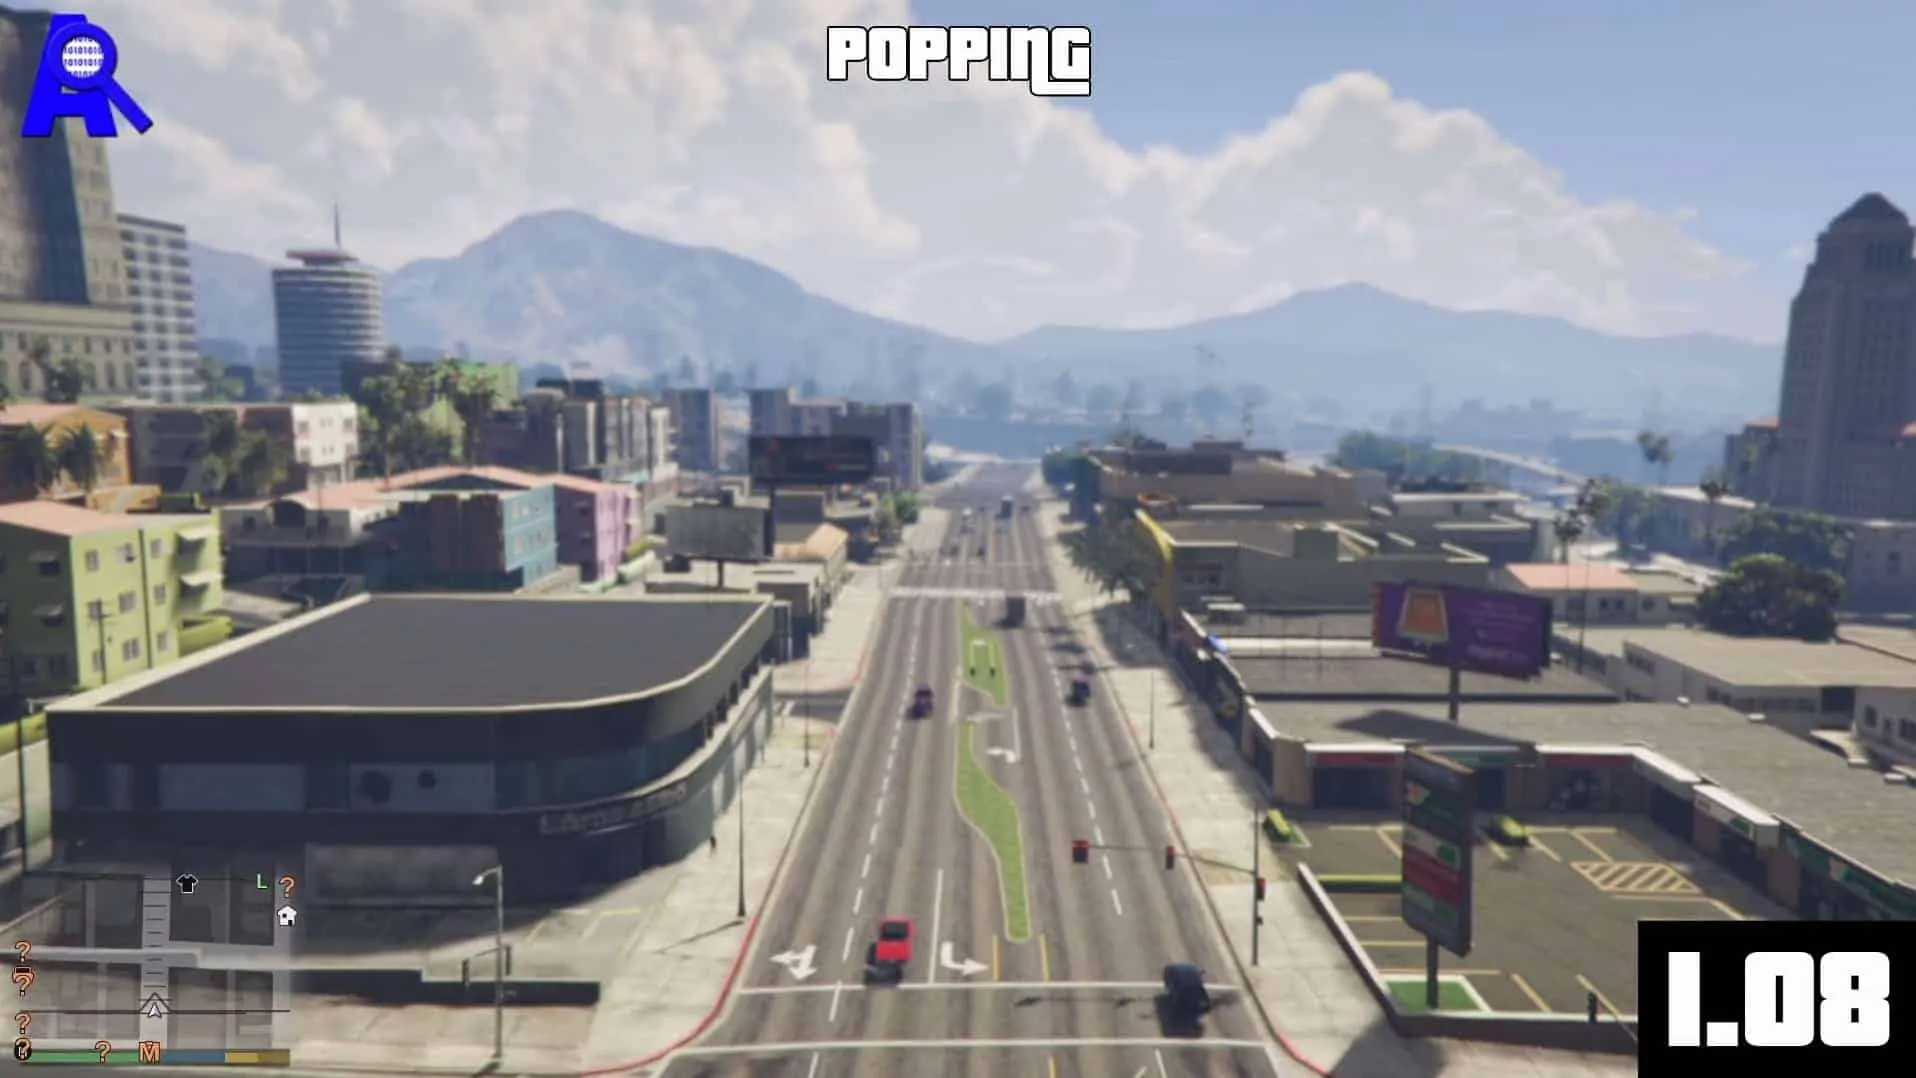 Whats the latest patch for gta 5